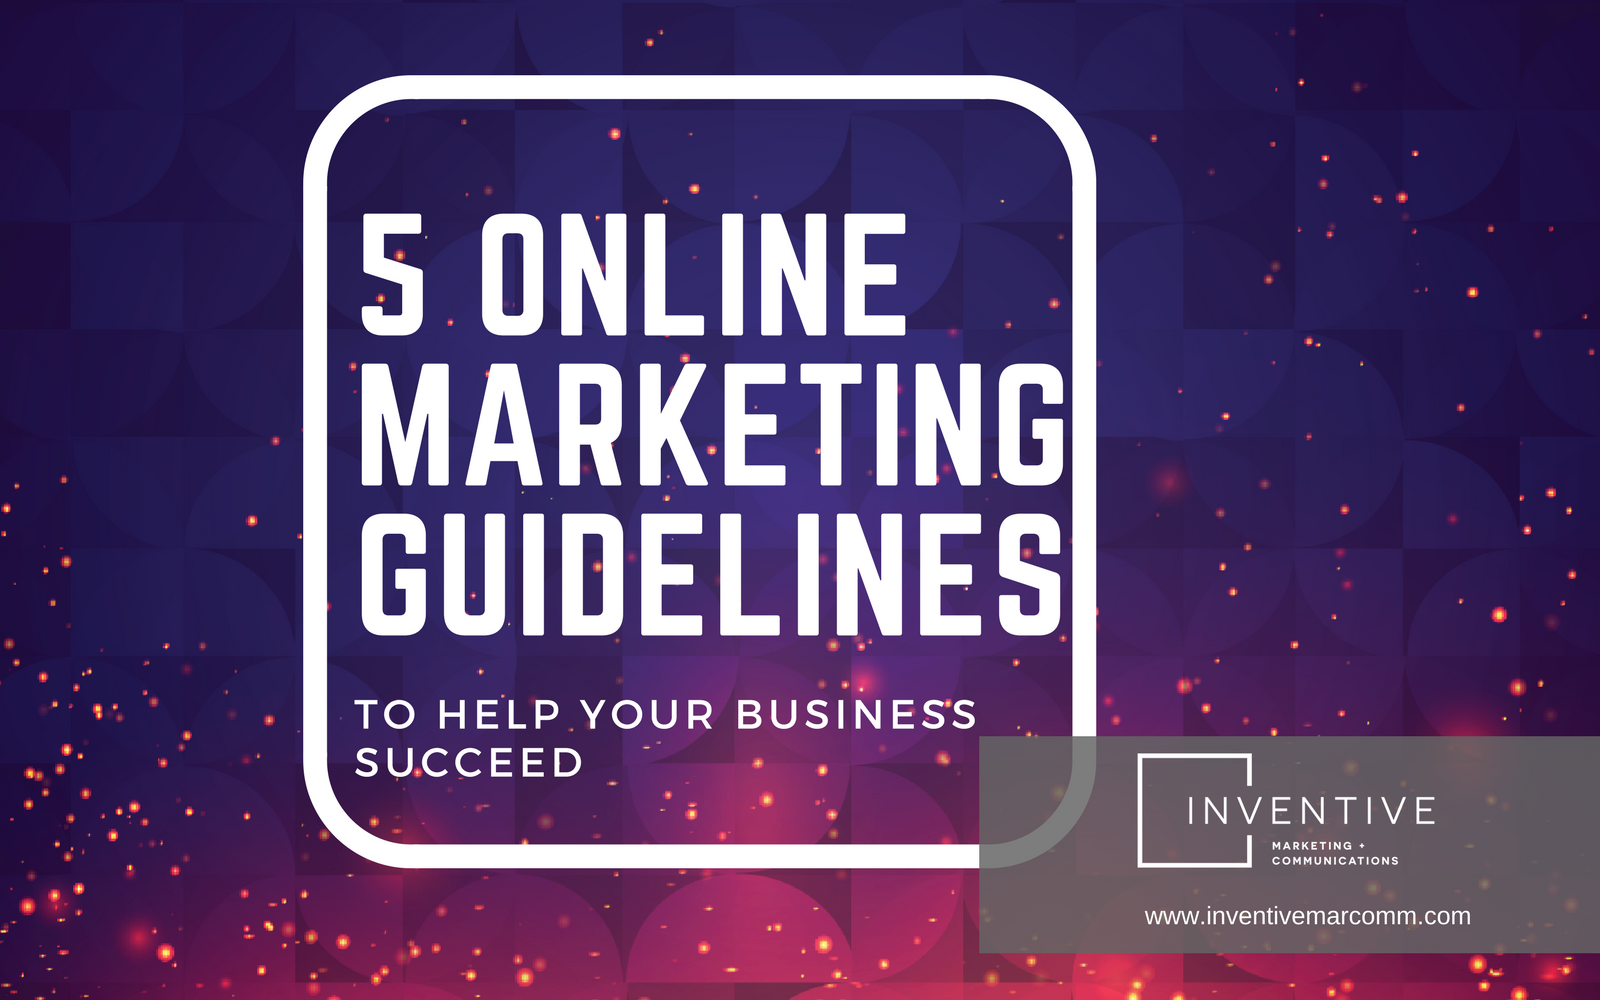 blogcover - 5 online marketing guidelines to help your business succeed.png